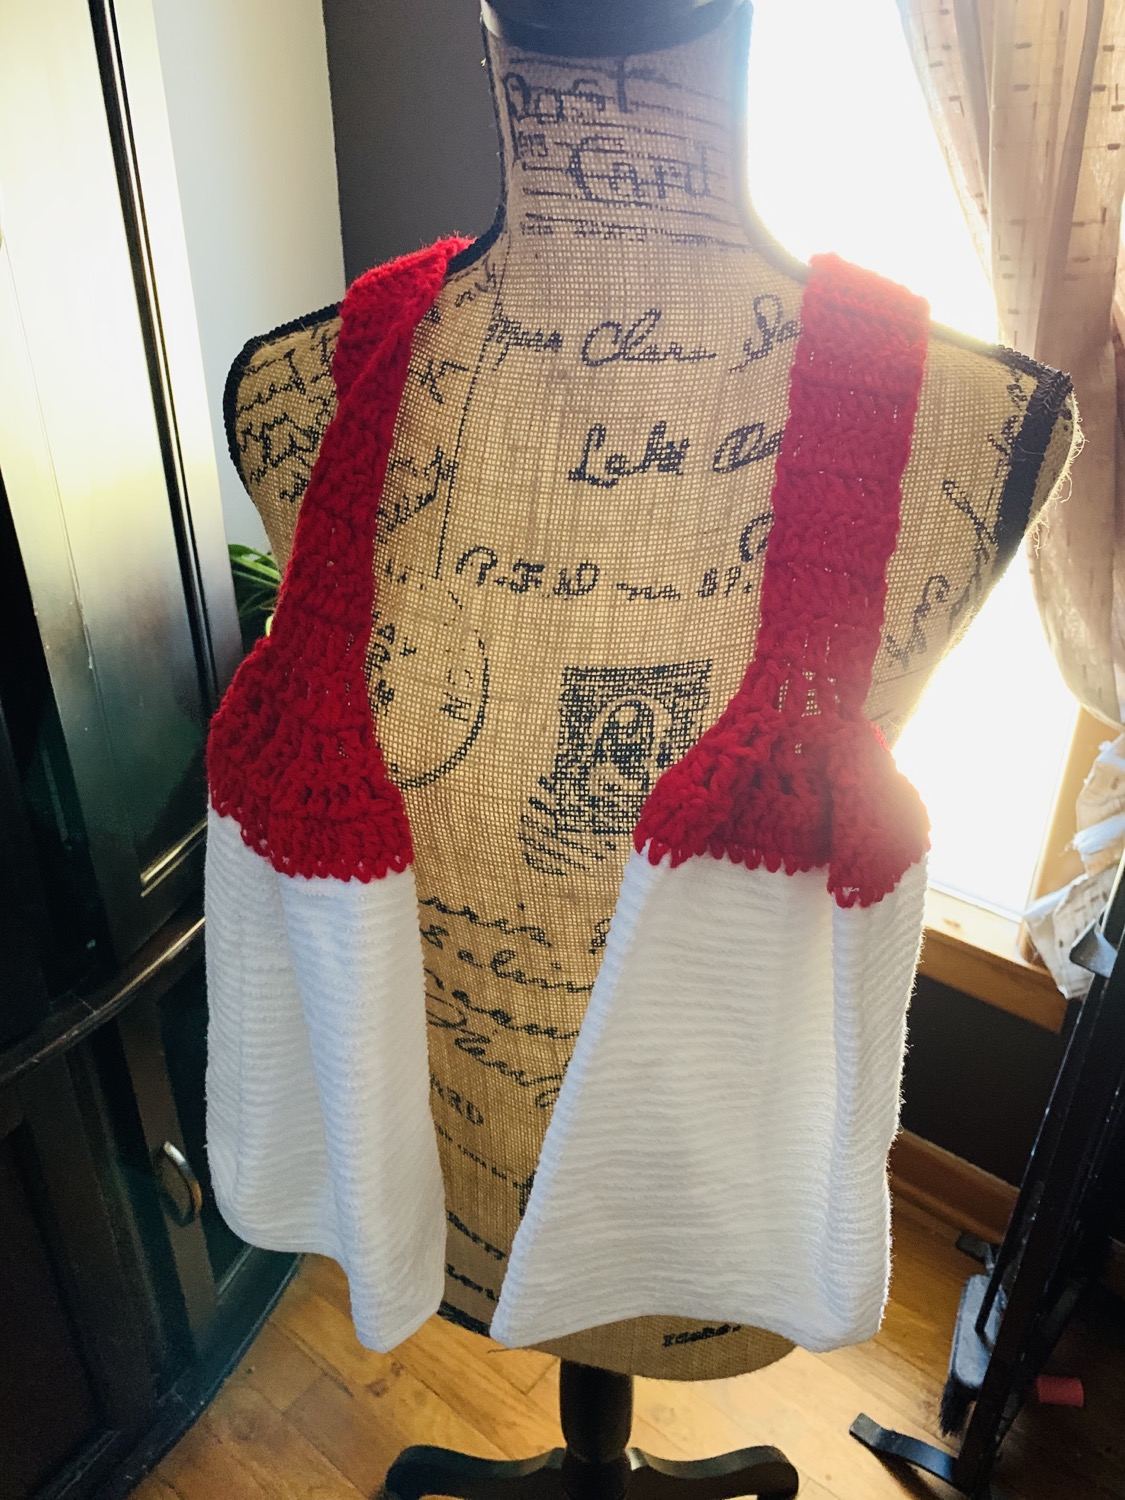 Red scarf towel with simple white towel